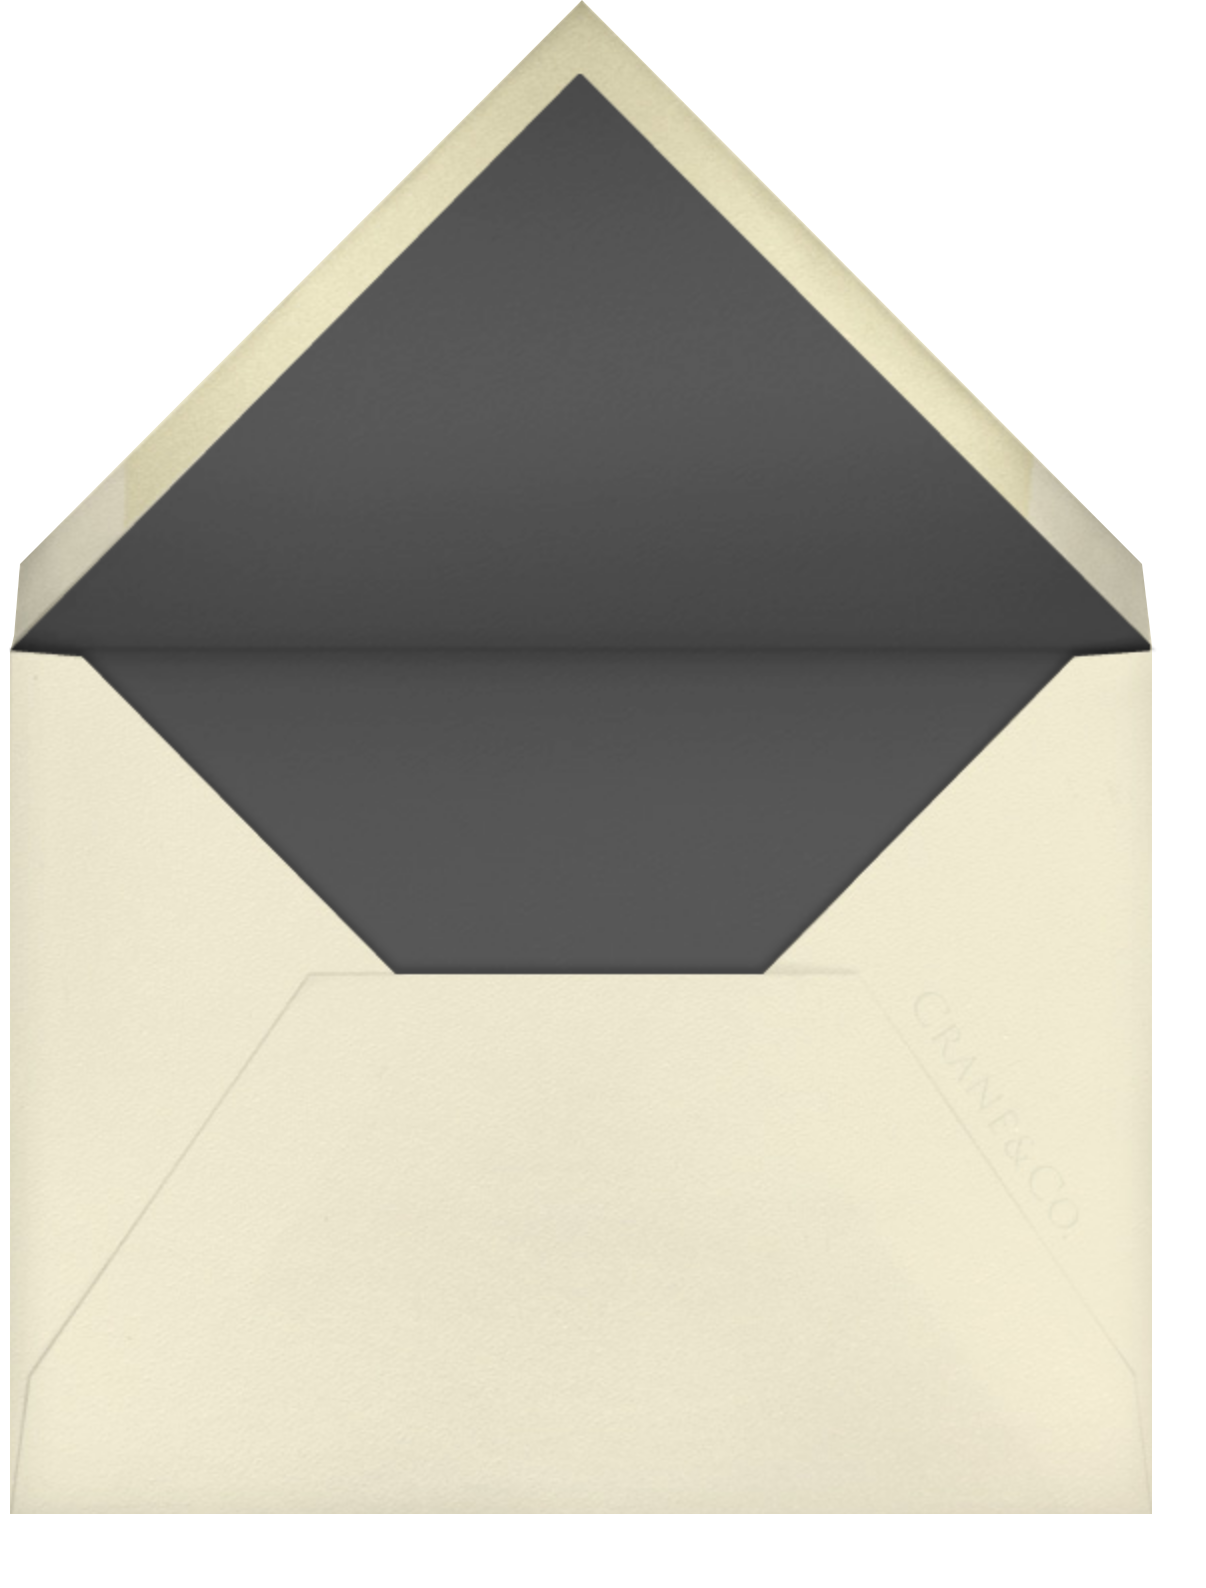 Chartres - Charcoal Gray - Paperless Post - Envelope